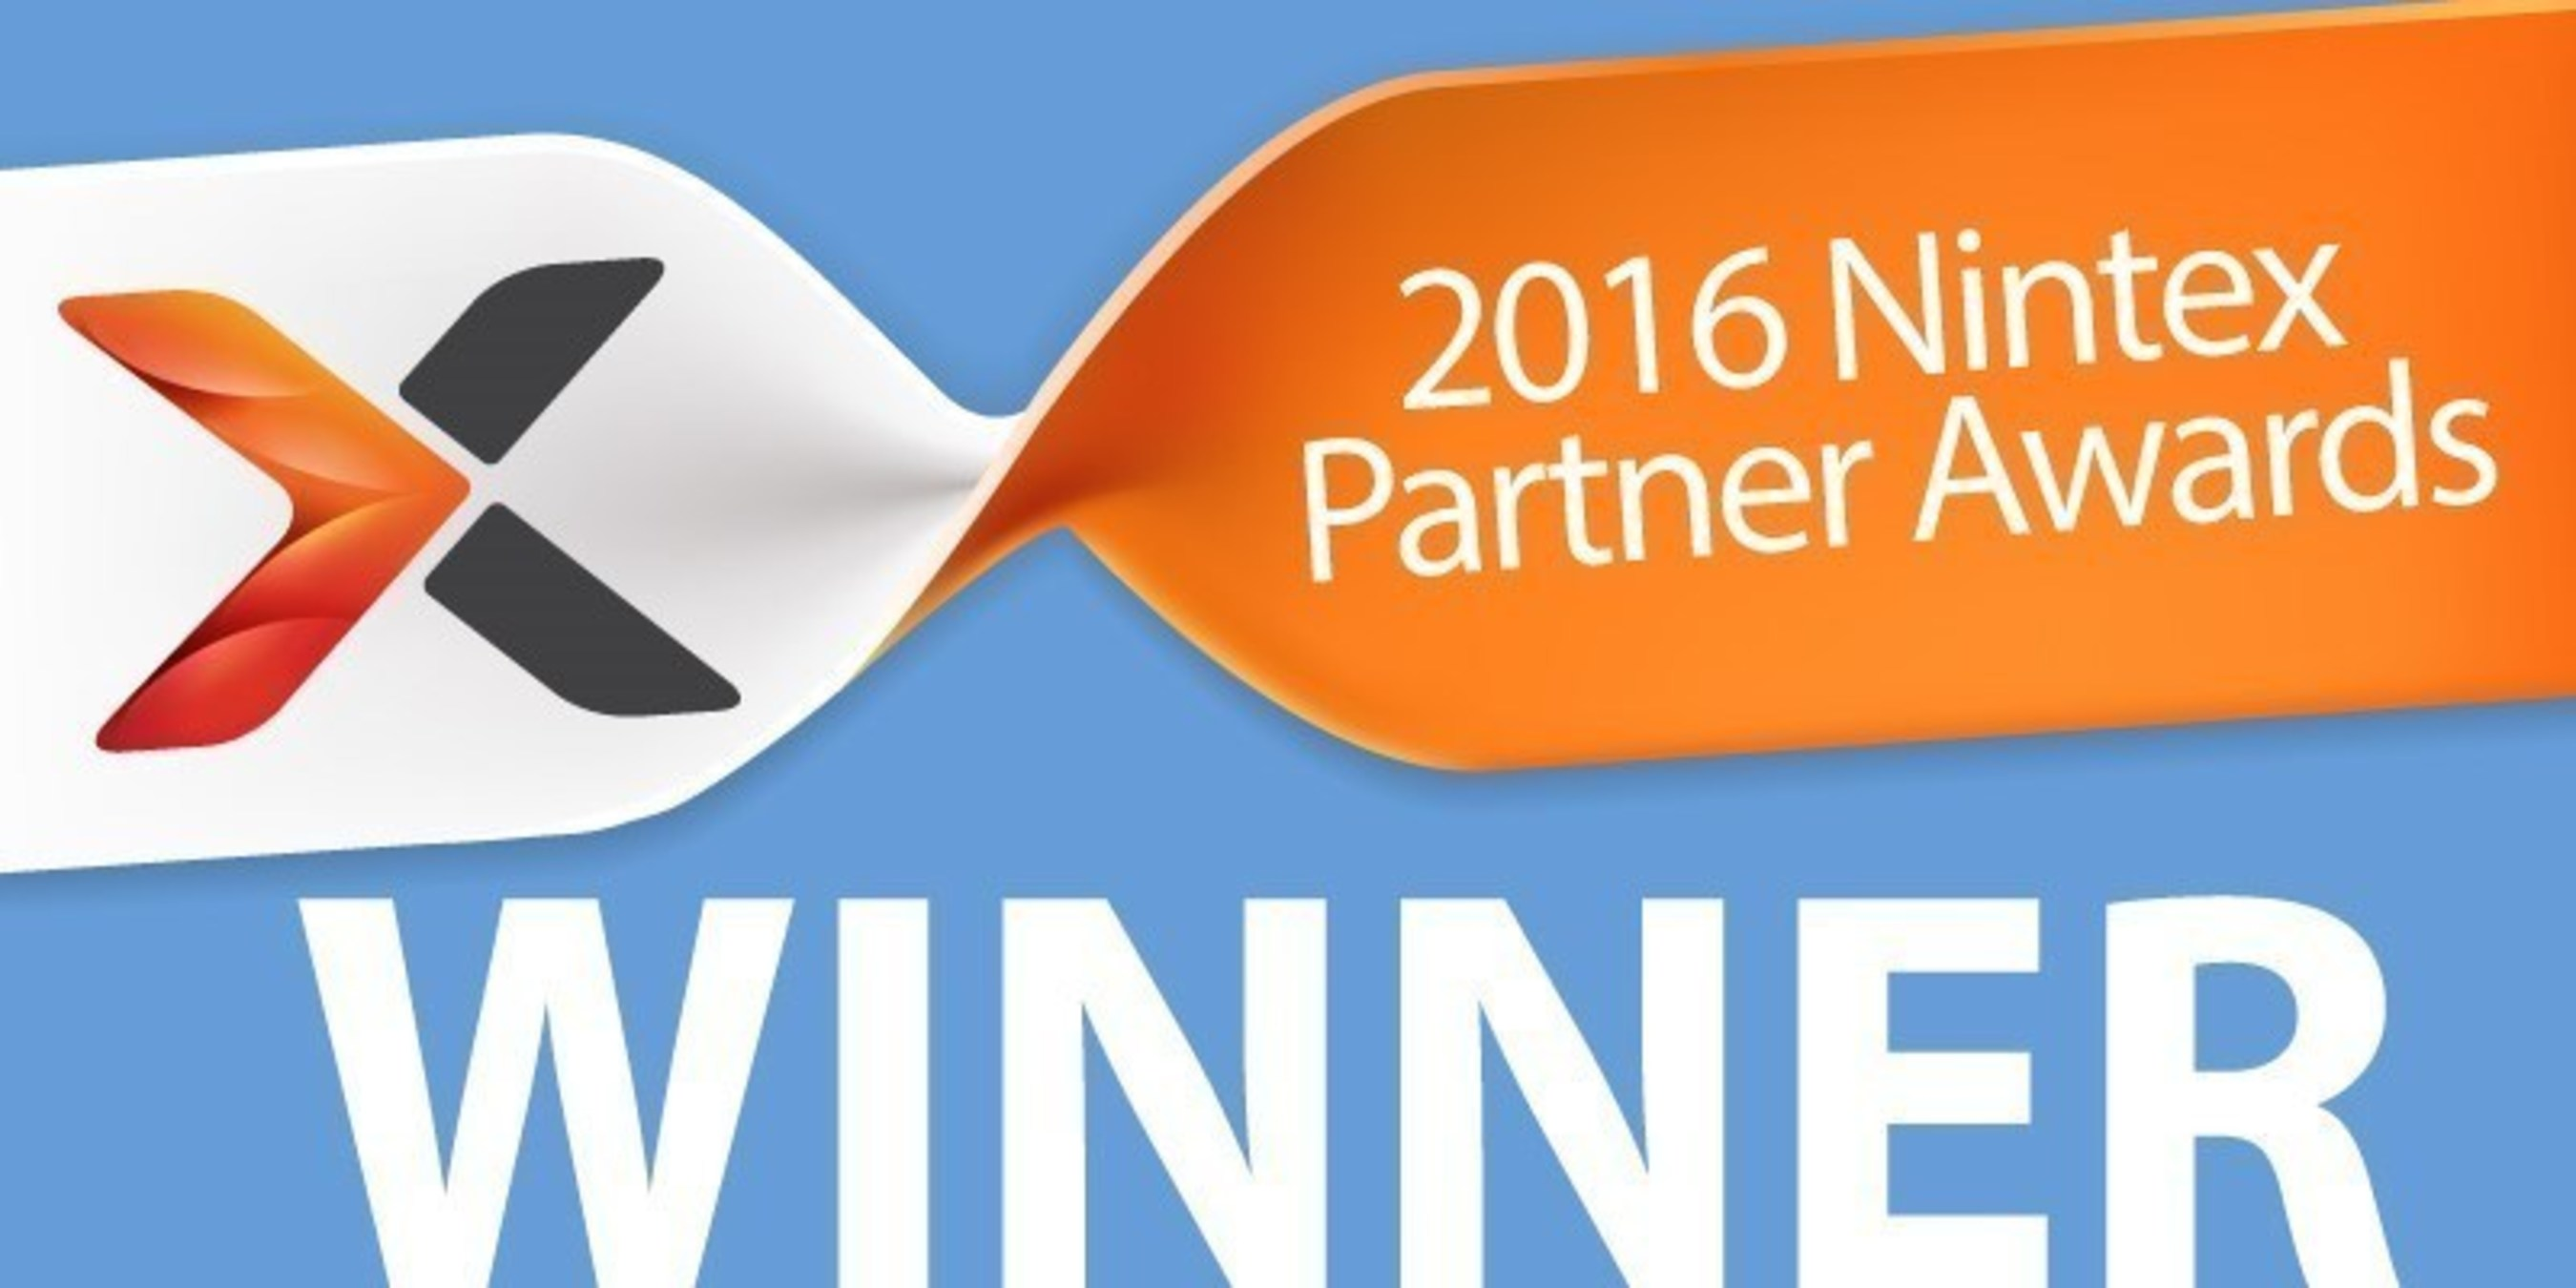 "In its fifth year, the Nintex Partner Awards recognize the valuable contributions channel partners--resellers, value added resellers (VARs), system integrators (SIs), independent software vendors (ISVs)--have made in helping organizations of all sizes, in every industry, automate workflows and the generation of documents to improve how business gets done. To learn more about successful Nintex partners, download the new e-book ""Partner with Nintex: The path to profitability"" at http://www.nintex.com/Partner-e-Book."